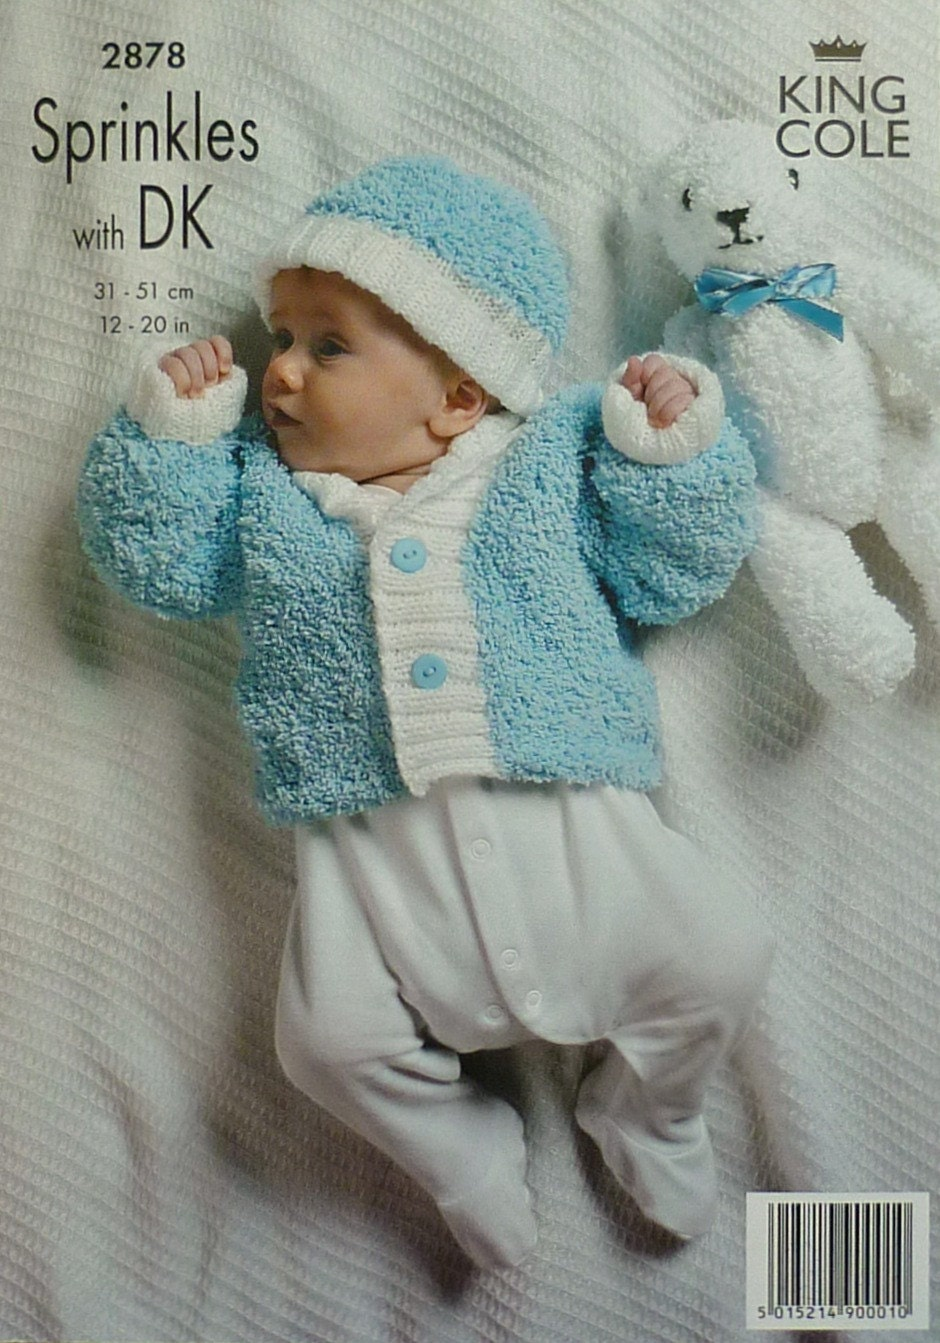 Knitting Pattern King Cole : Baby Knitting Pattern K2878 Babies Long Sleeve Cardigan ...